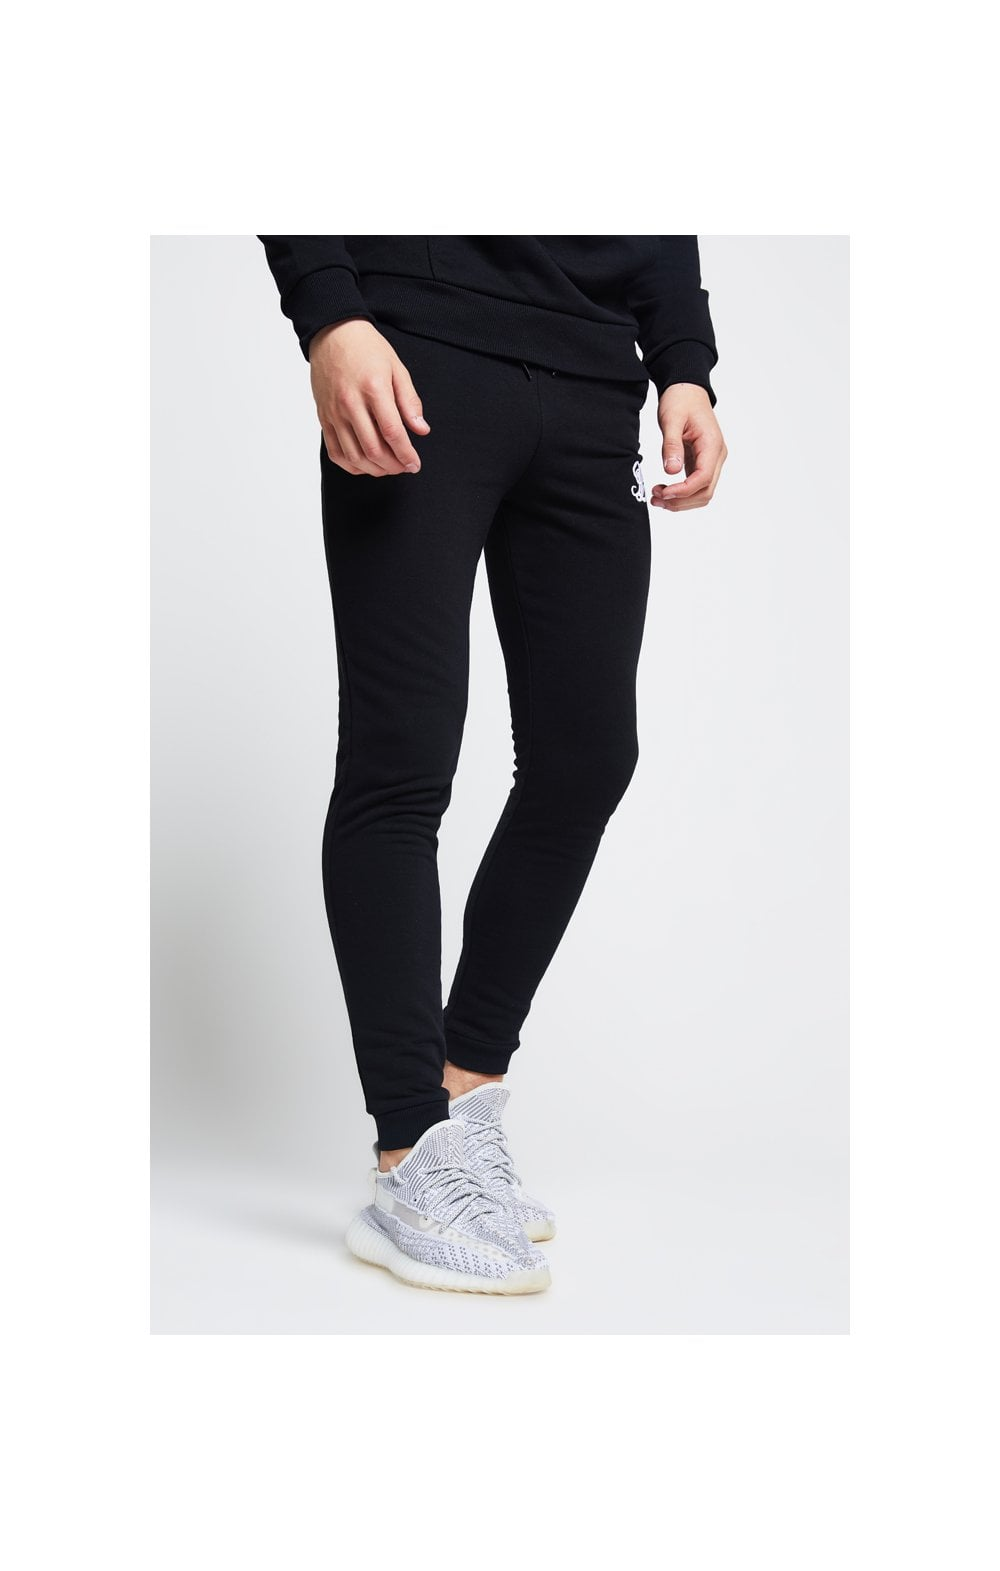 Illusive London Joggers – Black (1)